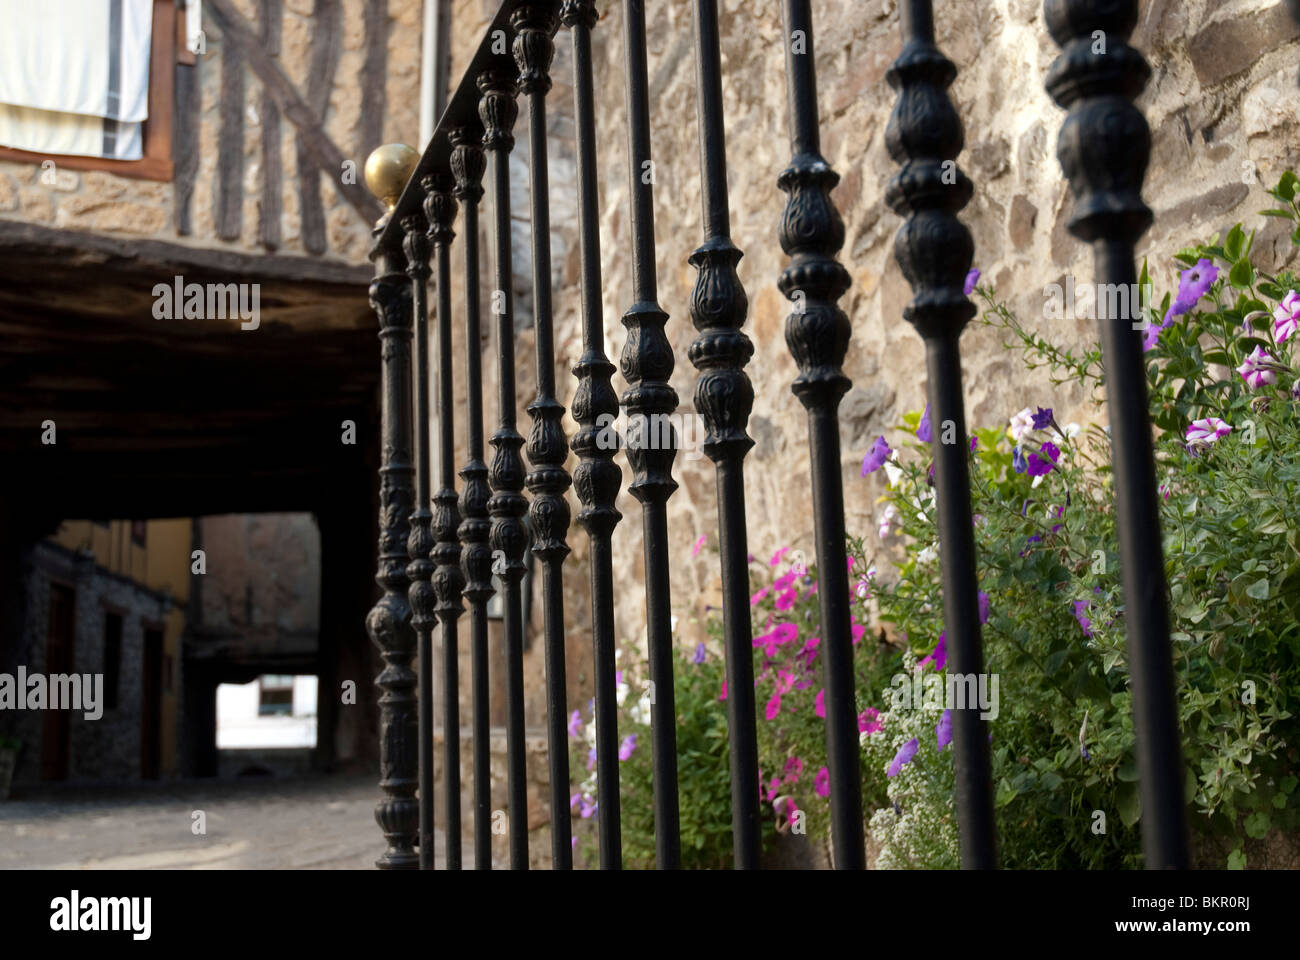 Covered walkway, Town of Potes, Picos de Europa, Northern Spain - Stock Image